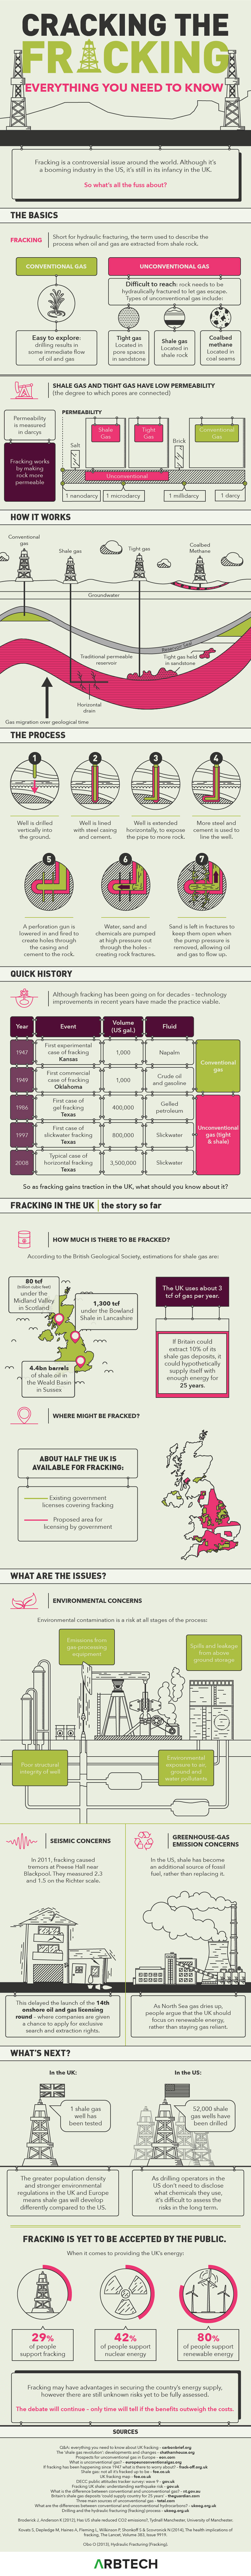 Cracking the Fracking: Everything You Need to Know